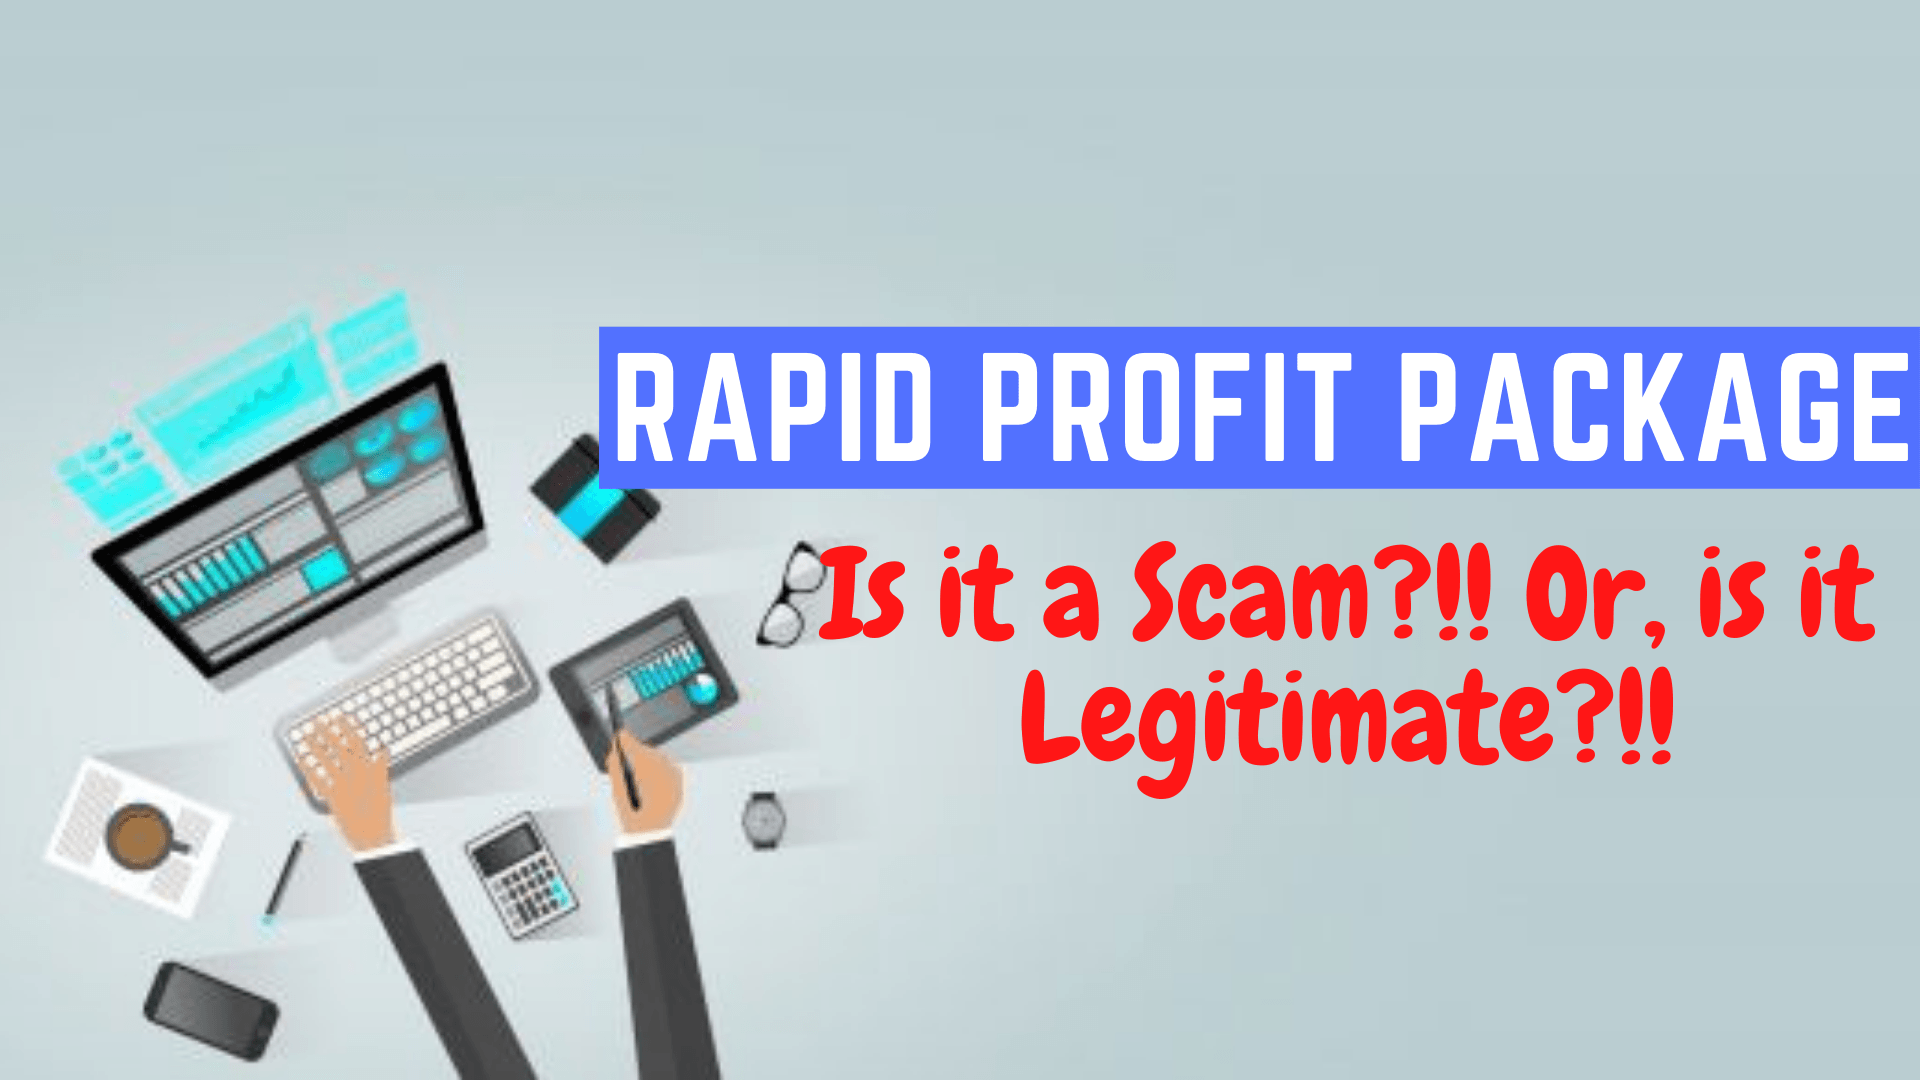 Rapid Profit Package Front Page Image